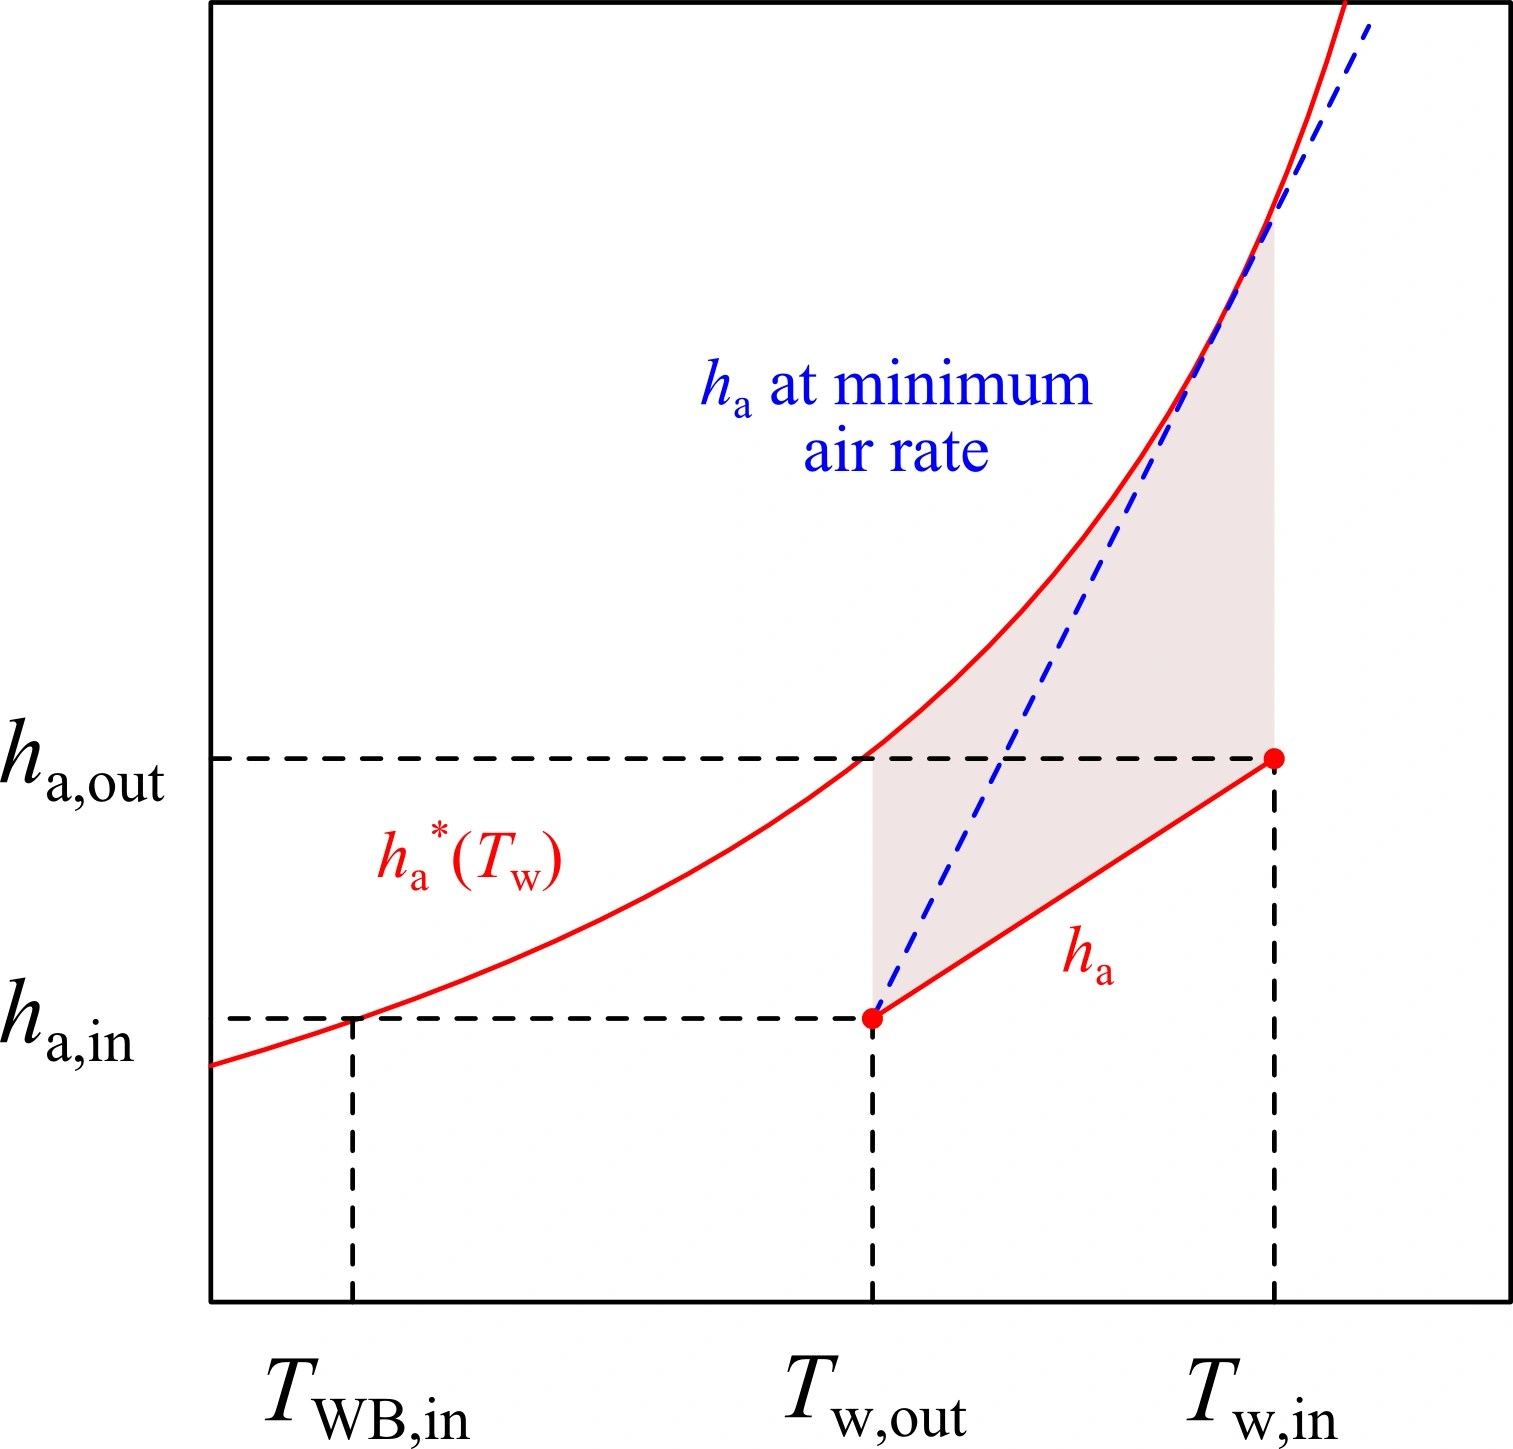 Figure 1. Specific Enthalpy Of Air Vs. Water Temperature Plot For Cooling  Tower Design. The Shaded Area Is Related To The Cop As Defined By The  Merkel